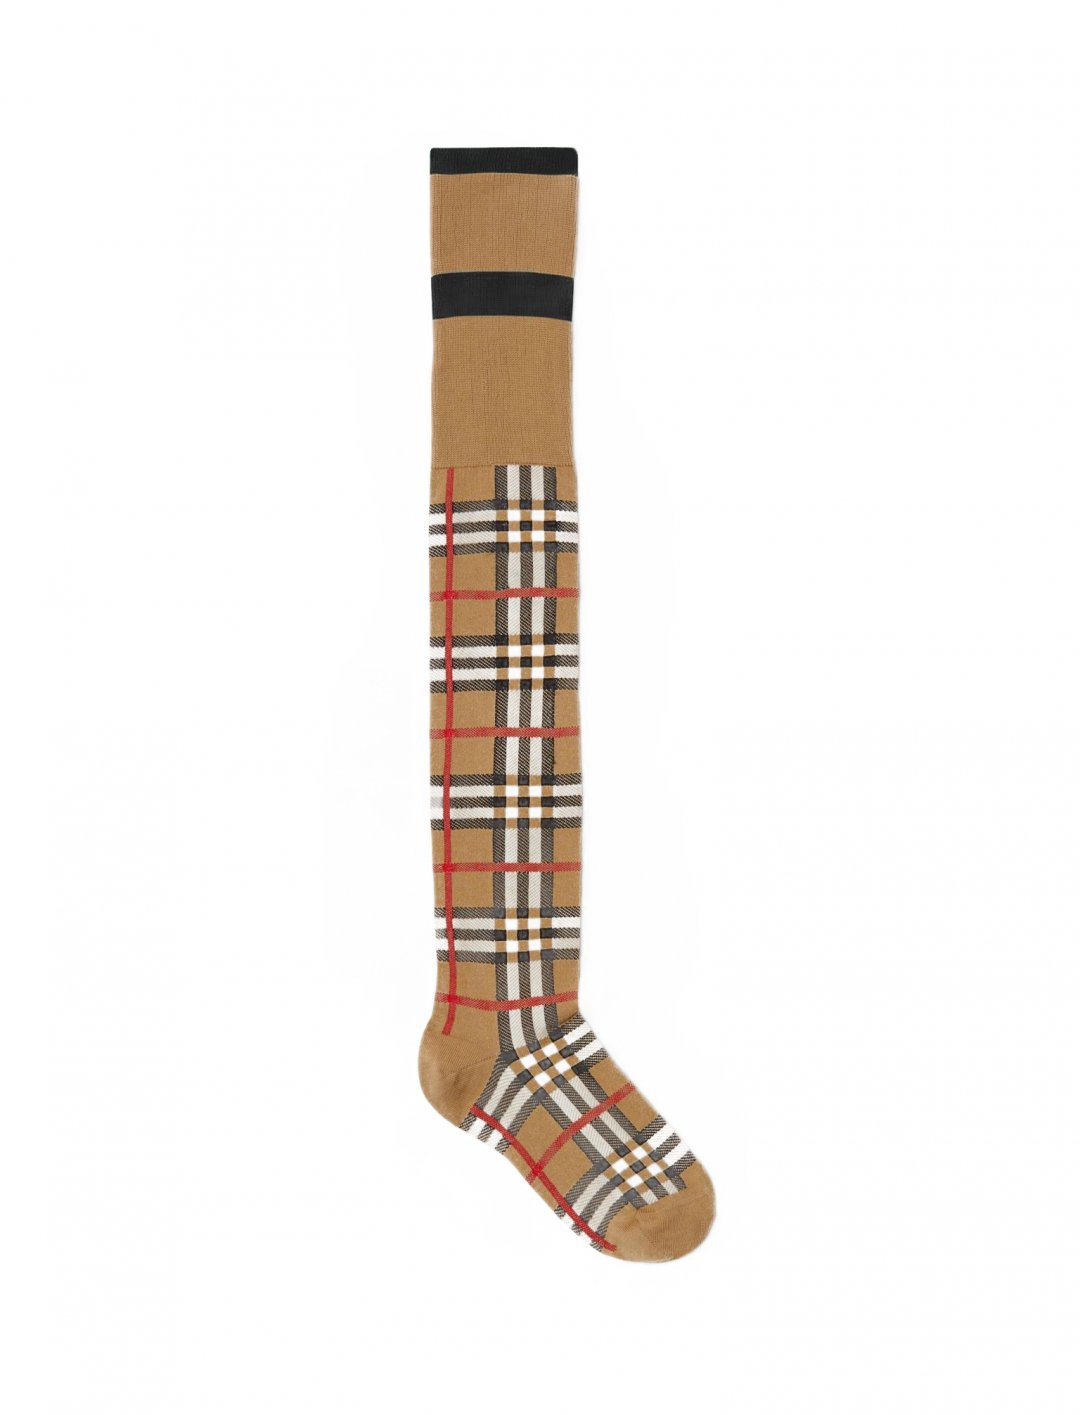 "Vintage Check Jacquard Socks {""id"":16,""product_section_id"":1,""name"":""Accessories"",""order"":15} Vivienne Westwood x Burberry"